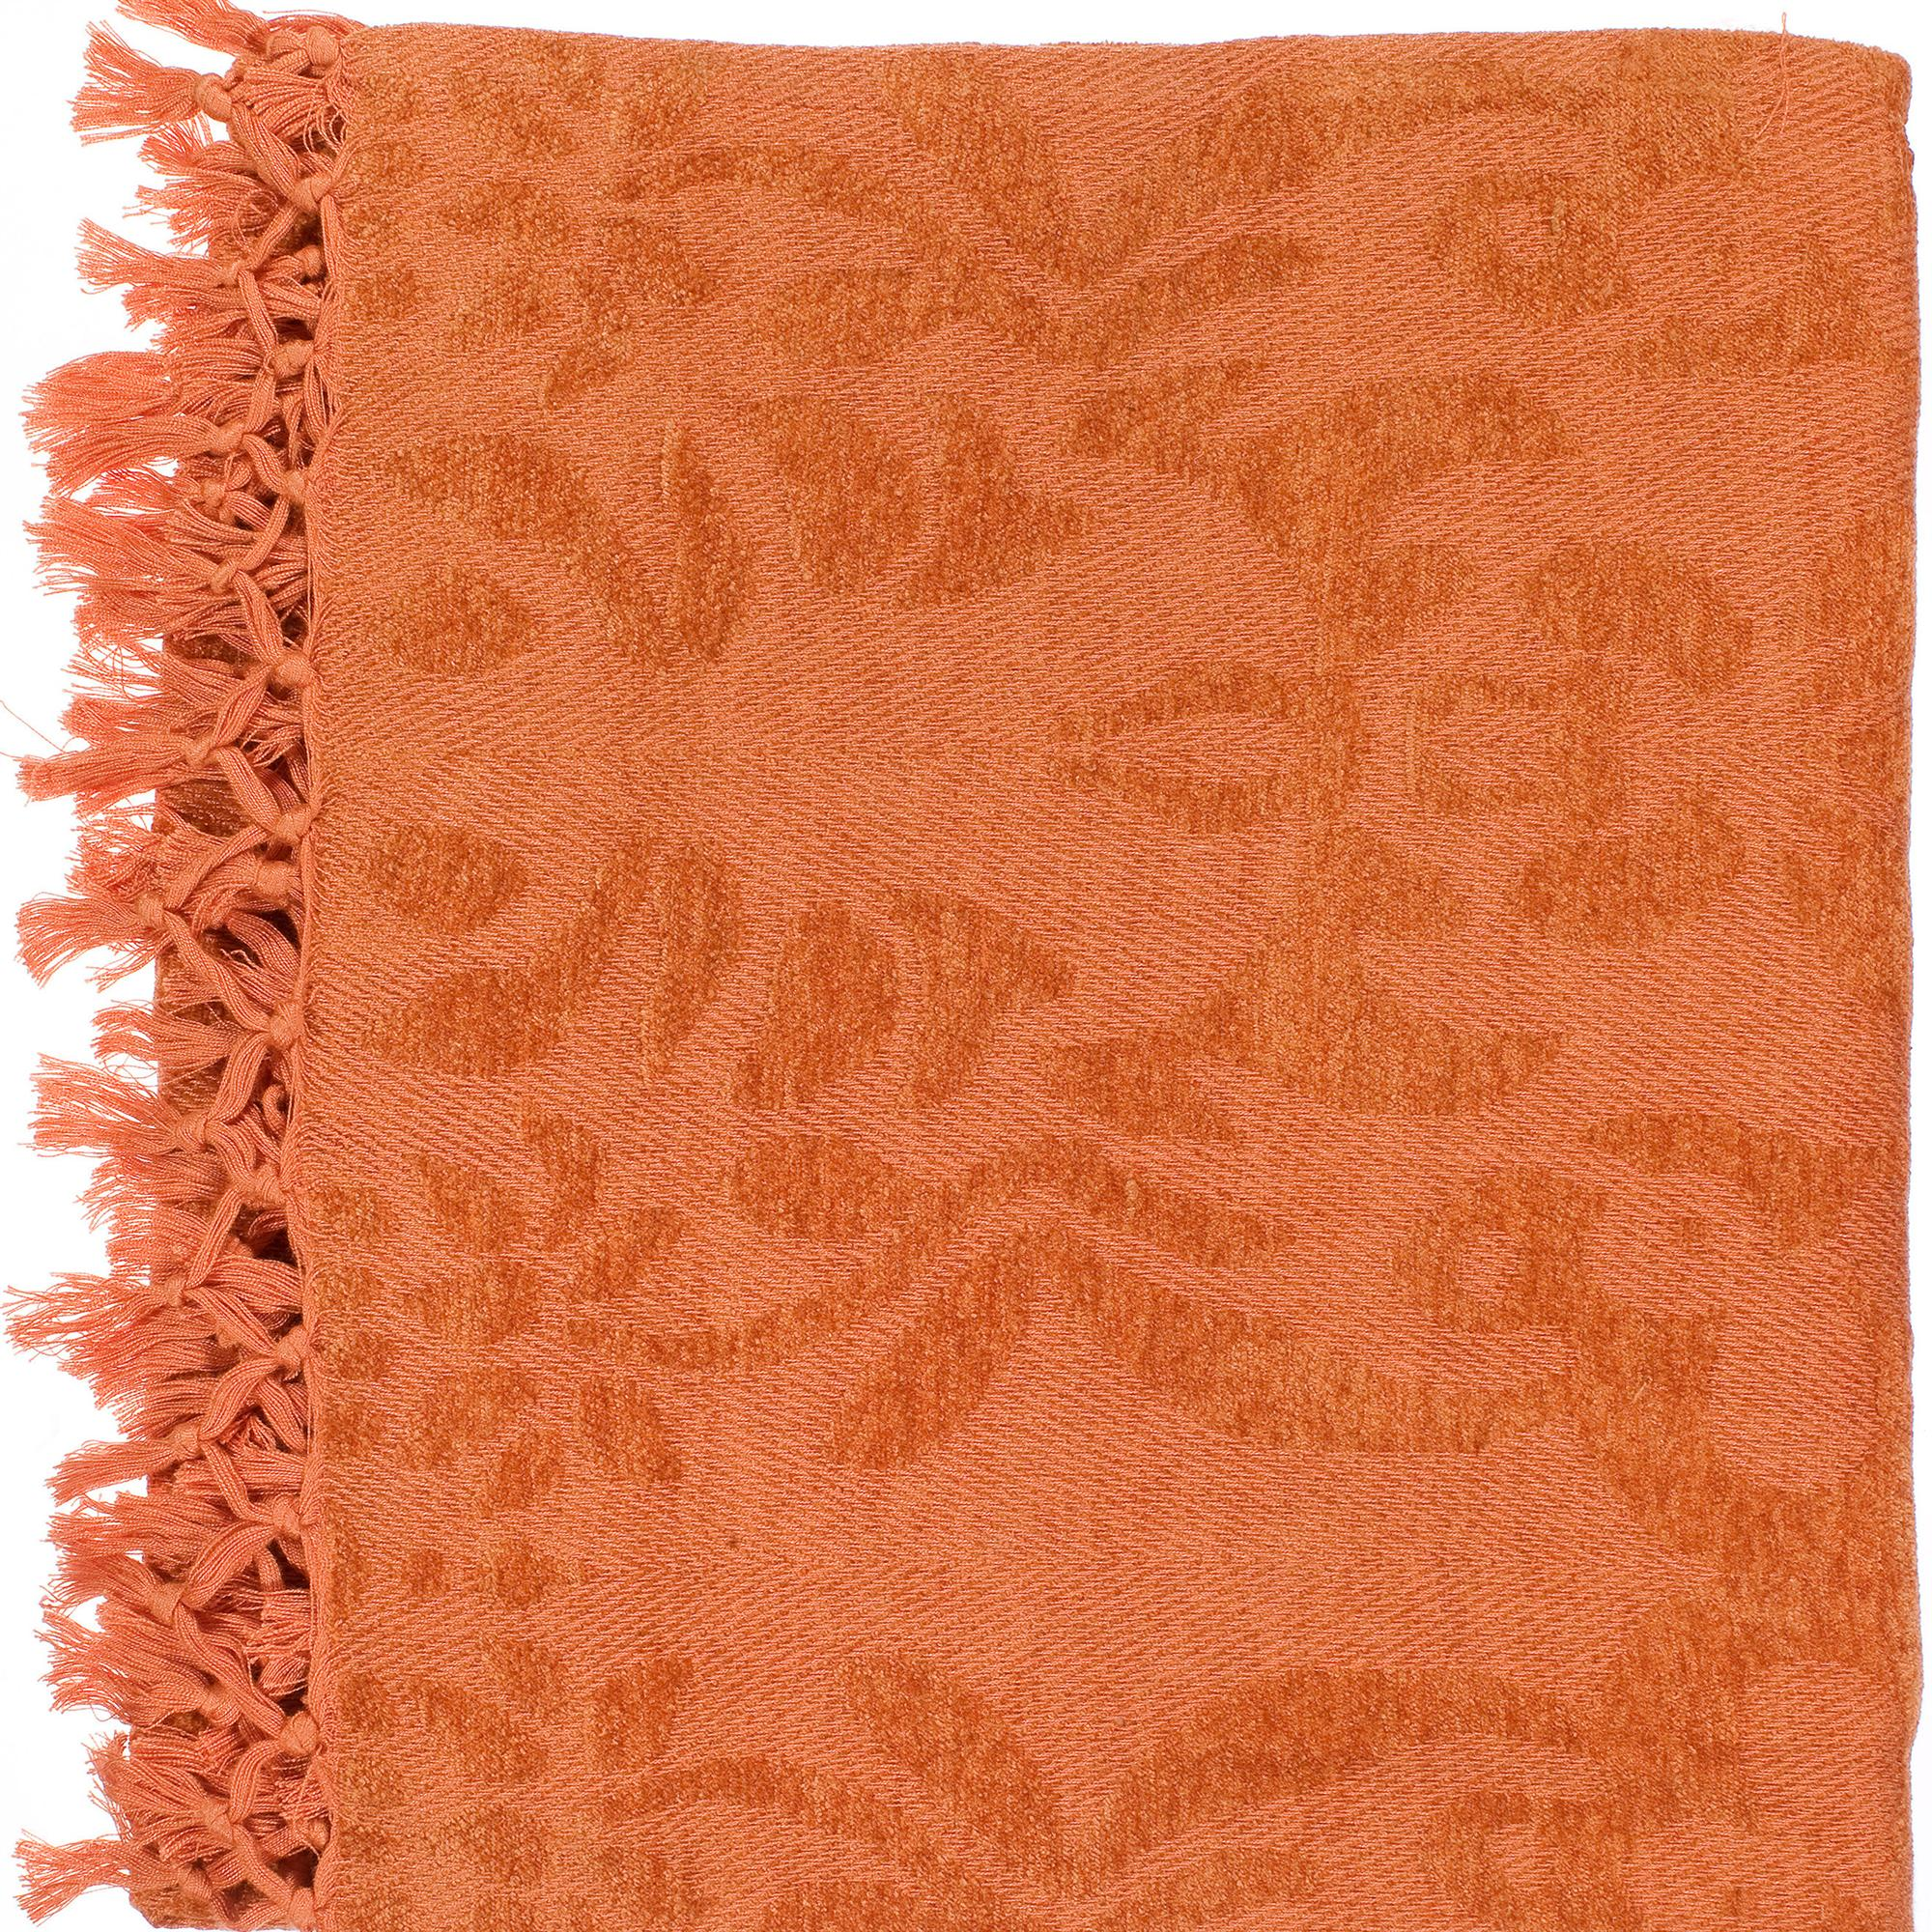 "Woven Yeshiva Viscose Throw Blanket (50"" x 70"")"